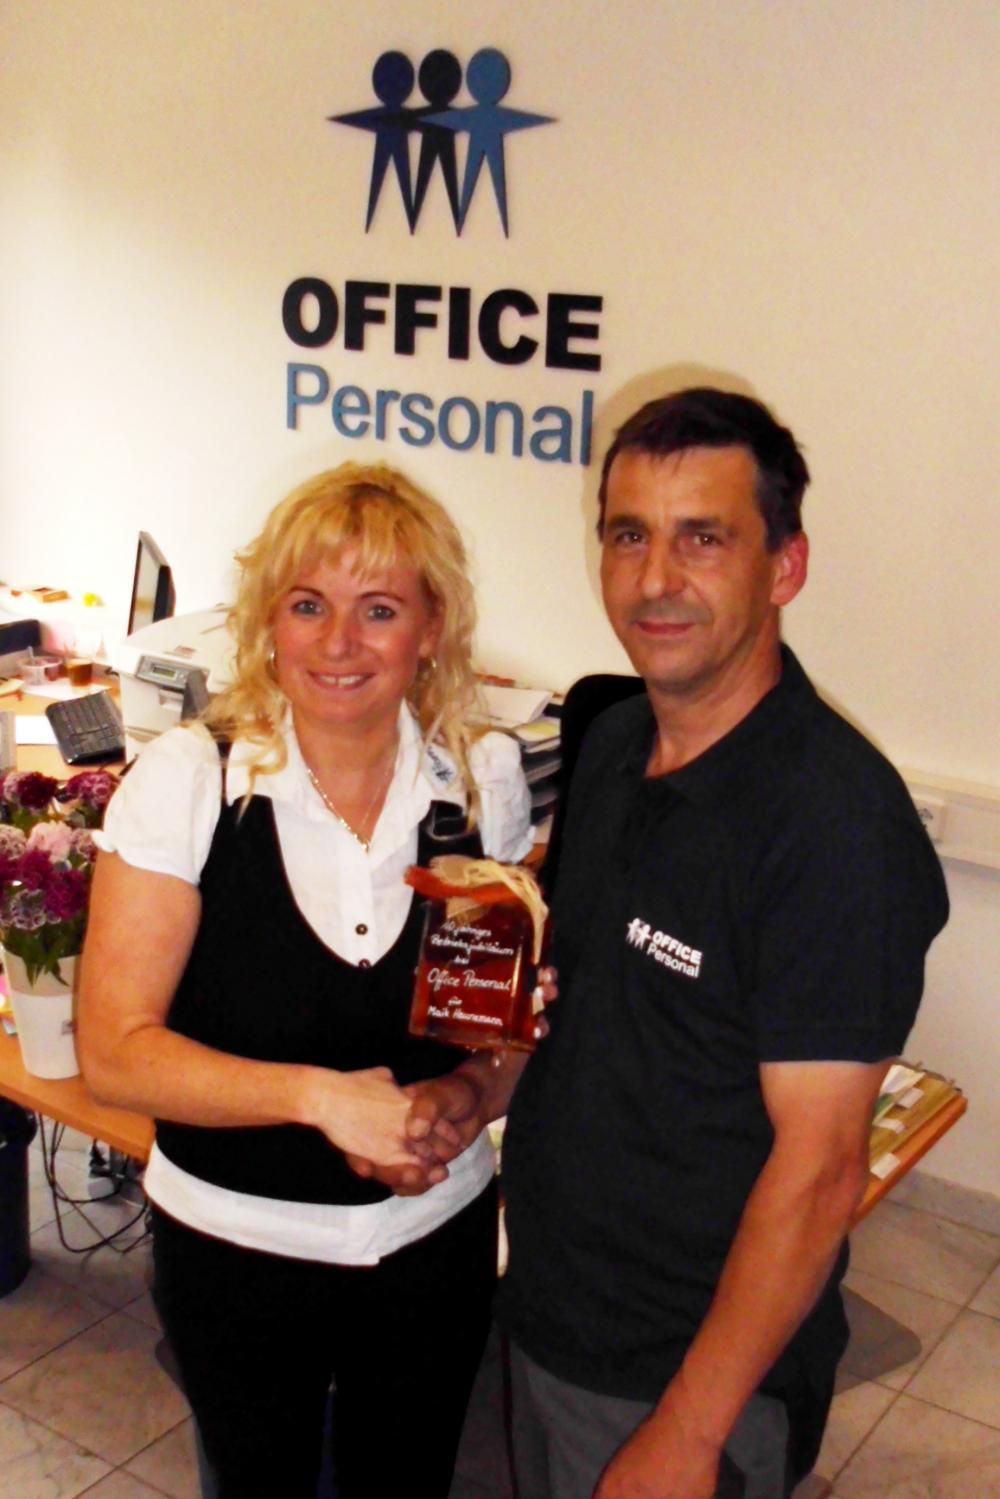 10Jahre OFFICE Personal